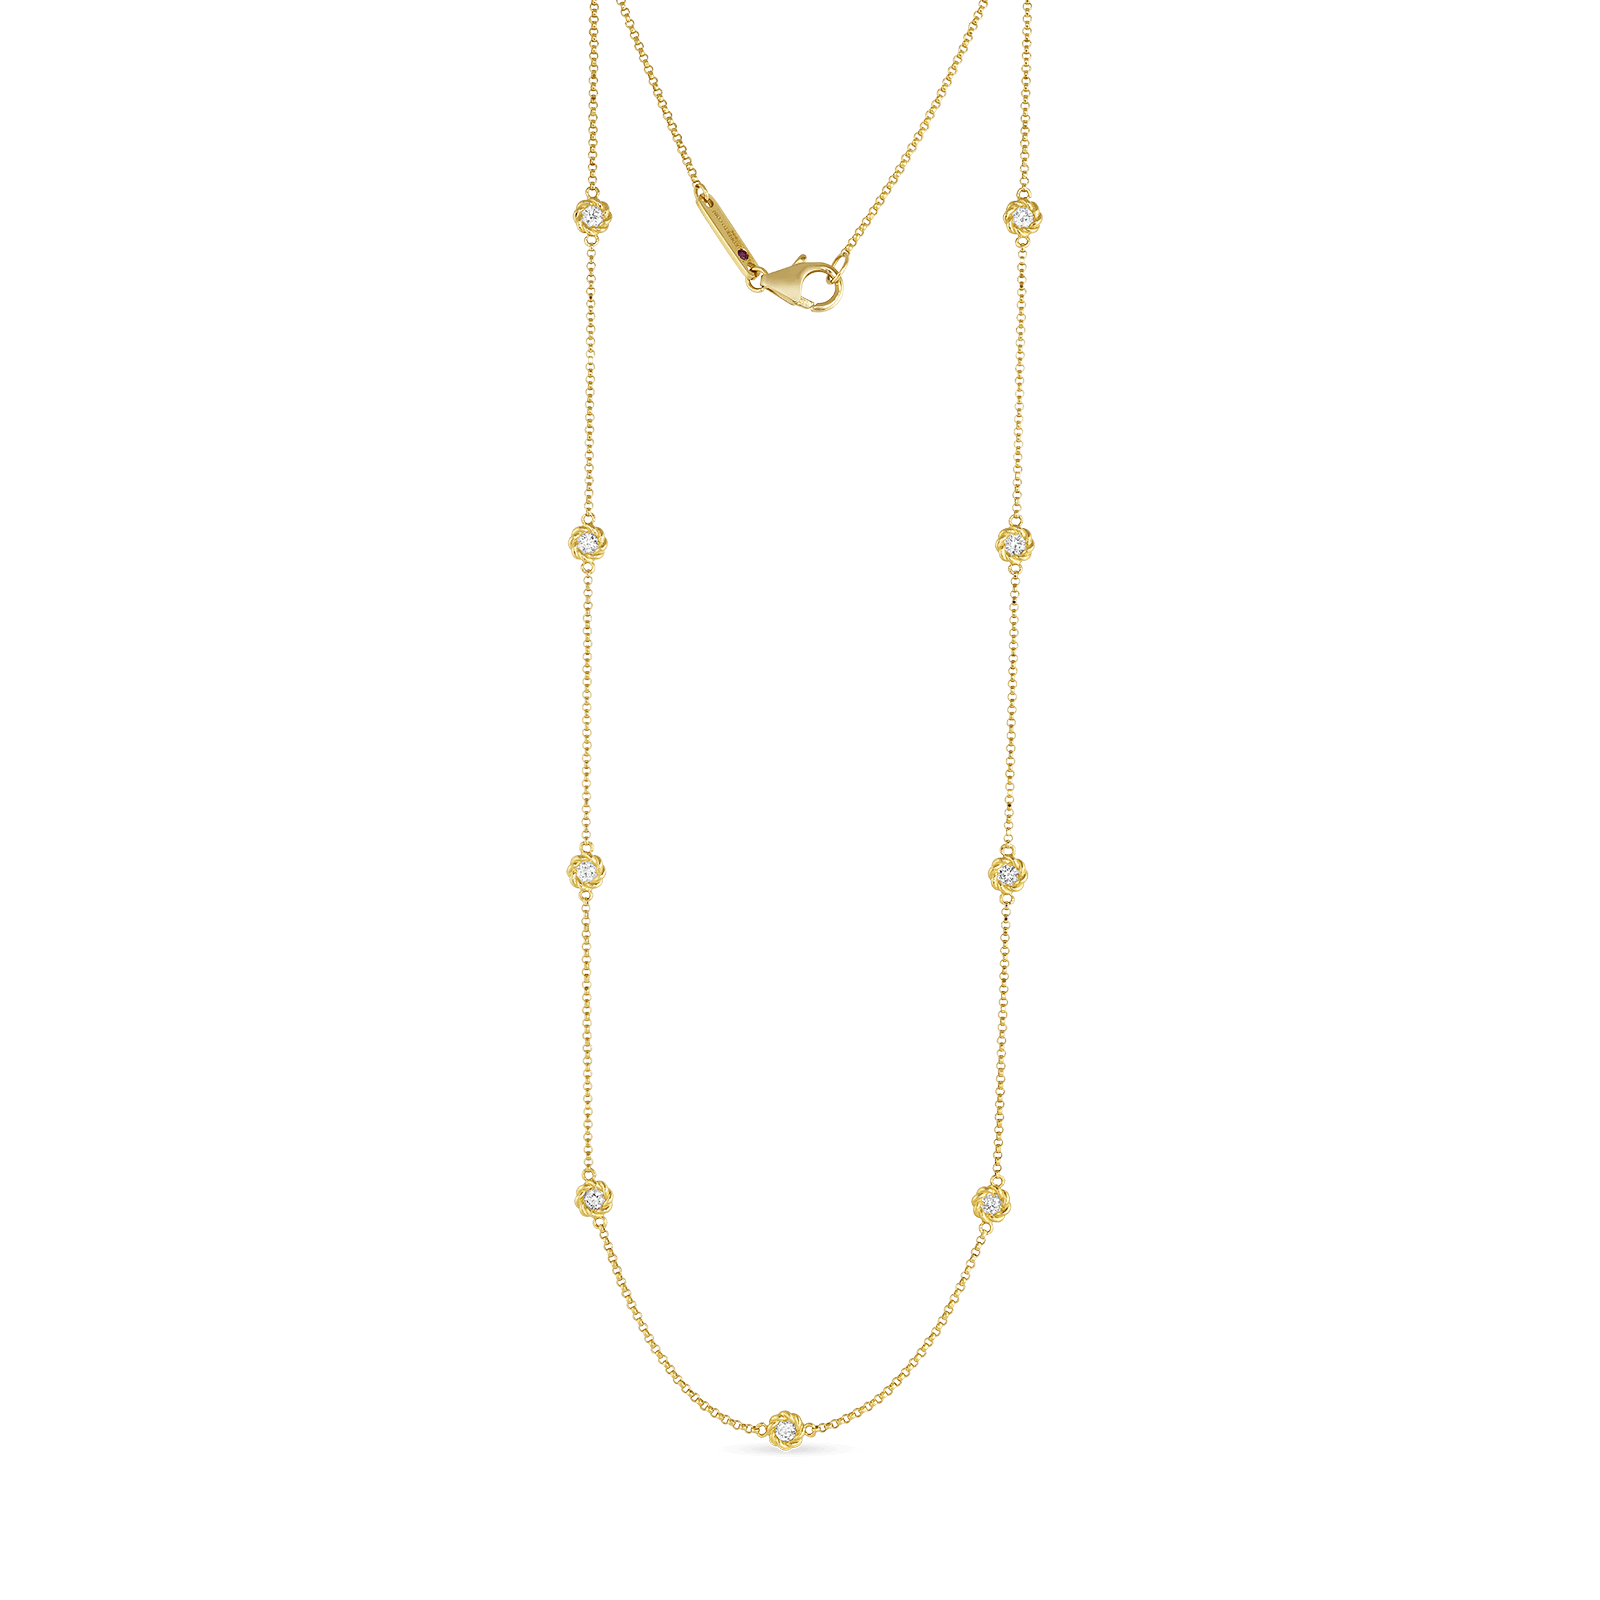 Roberto-Coin-18k-yellow-gold-Long-Necklace-with-Alternating-Diamond-Stations-7771331AY31Xalt